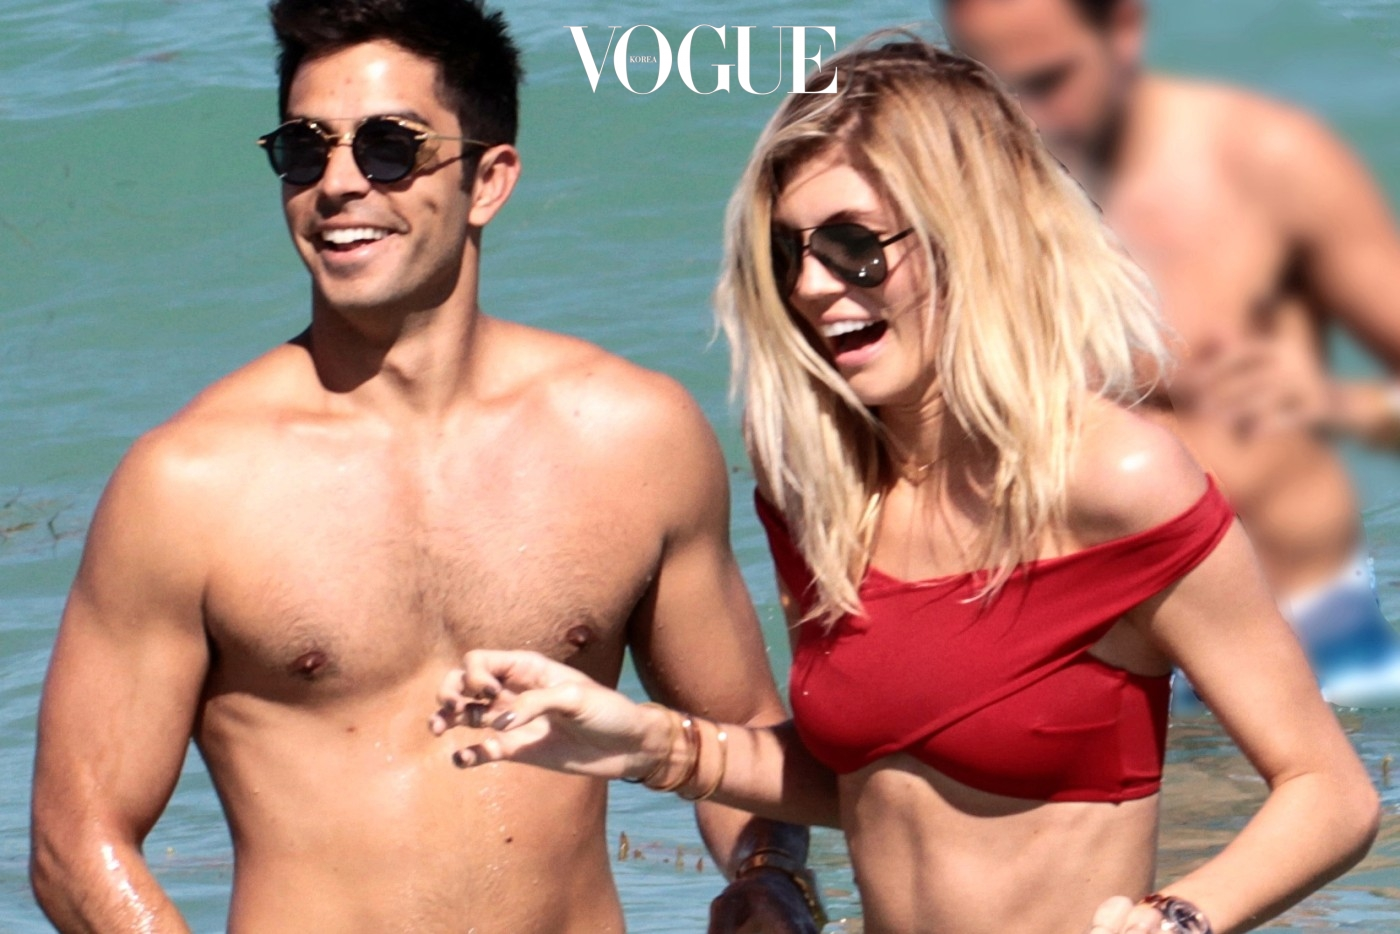 Victoria's Secret model  Devon Windsor and her boyfriend Johnny Dex celebrate their one year anniversary on Miami Beach, Florida.  Pictured: Devon Windsor amd Johnny Dex Ref: SPL1464482  190317   Picture by: FAMA PRESS / Splash News  Splash News and Pictures Los Angeles:	310-821-2666 New York:	212-619-2666 London:	870-934-2666 photodesk@splashnews.com